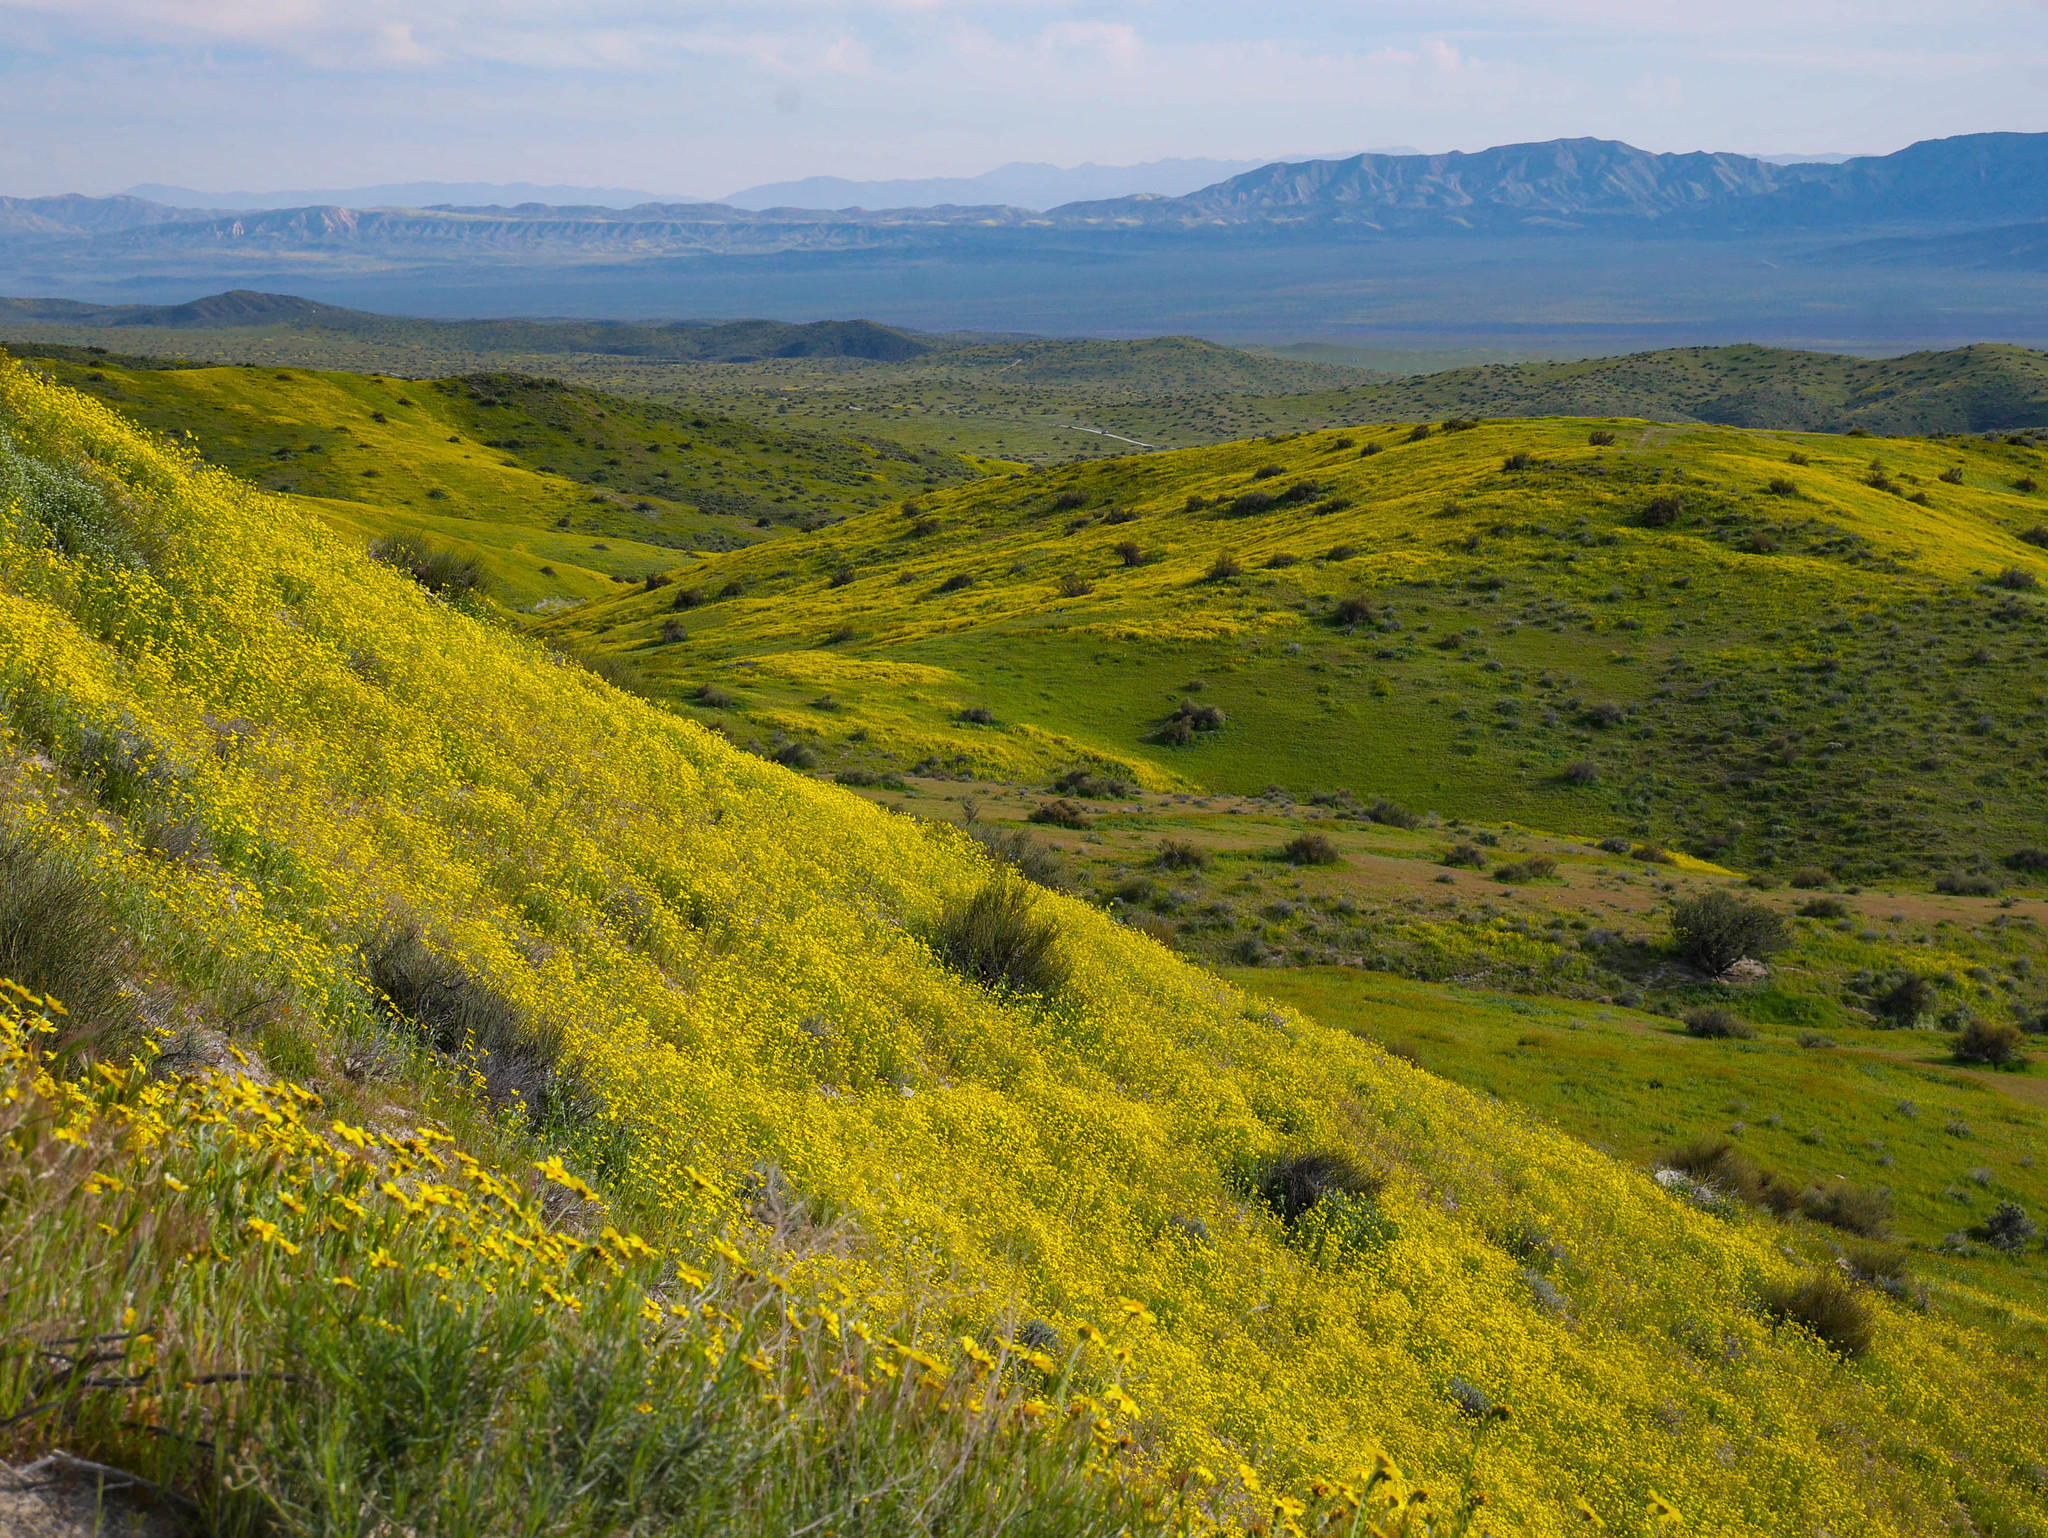 Carrizo Plain from the Temblor Range